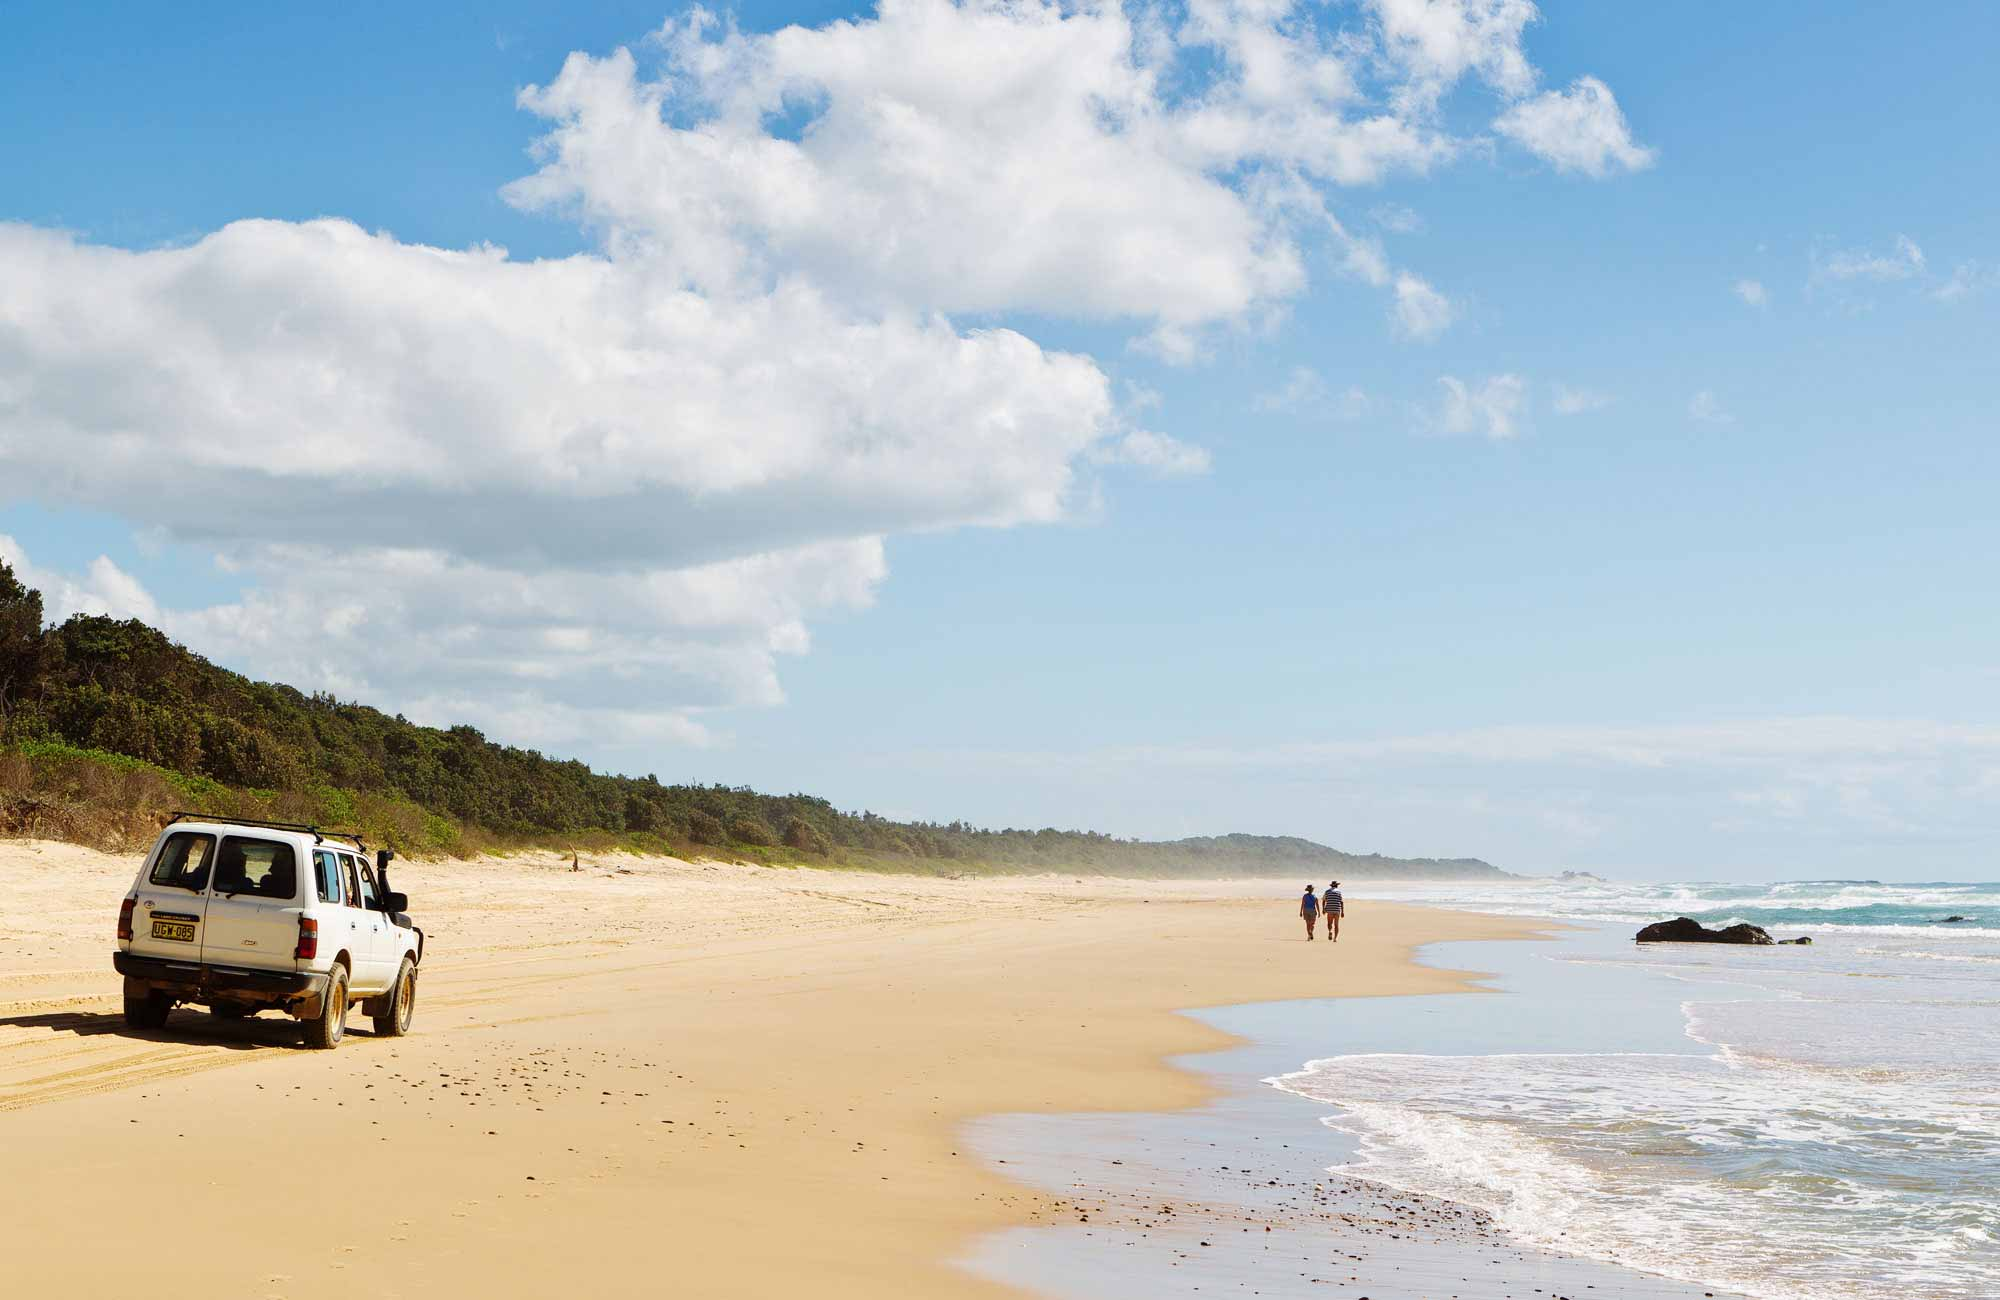 4WD vehicle on the beach, Bongil Bongil National Park. Photo: Rob Cleary